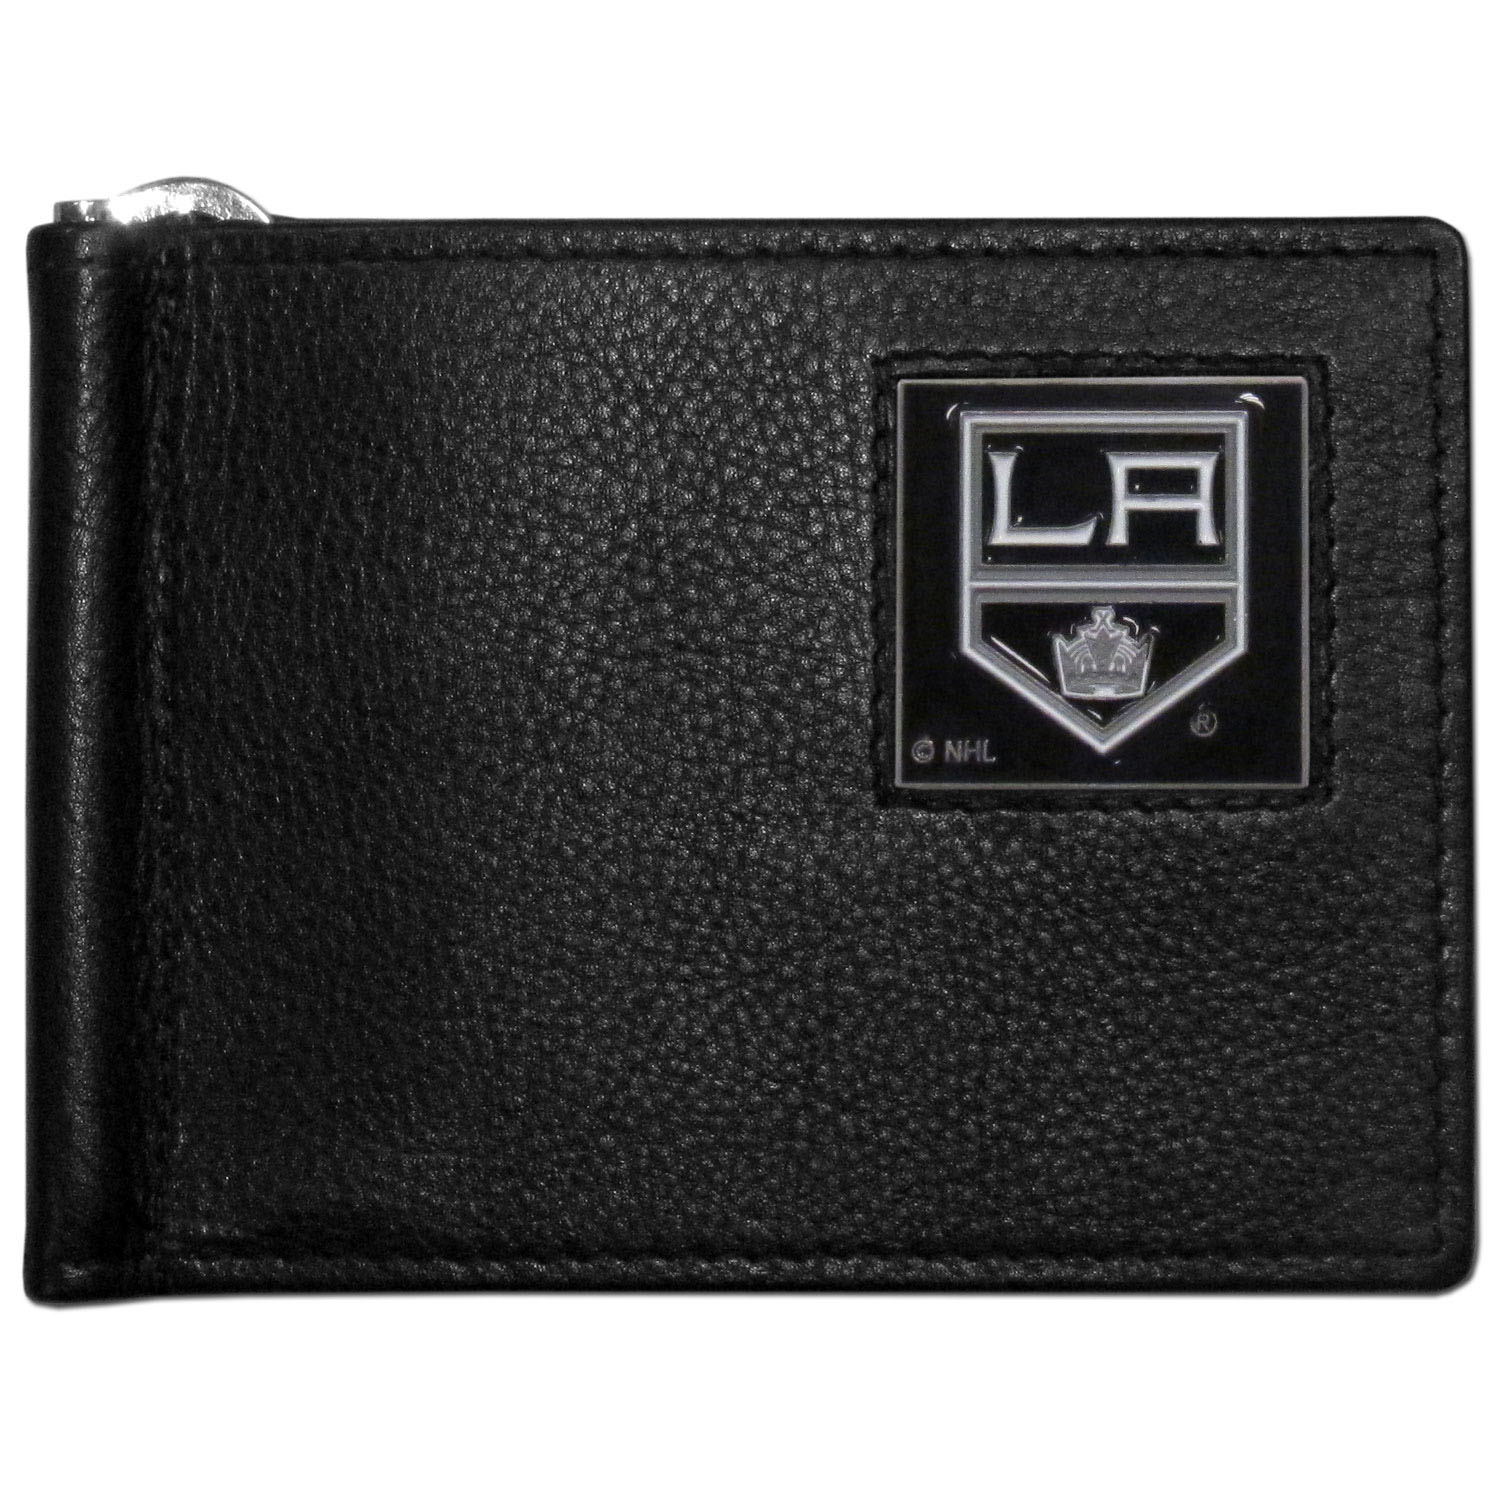 Los Angeles Kings® Leather Bill Clip Wallet - This cool new style wallet features an inner, metal bill clip that lips up for easy access. The super slim wallet holds tons of stuff with ample pockets, credit card slots & windowed ID slot. The wallet is made of genuine fine grain leather and it finished with a metal Los Angeles Kings® emblem. The wallet is shipped in gift box packaging.